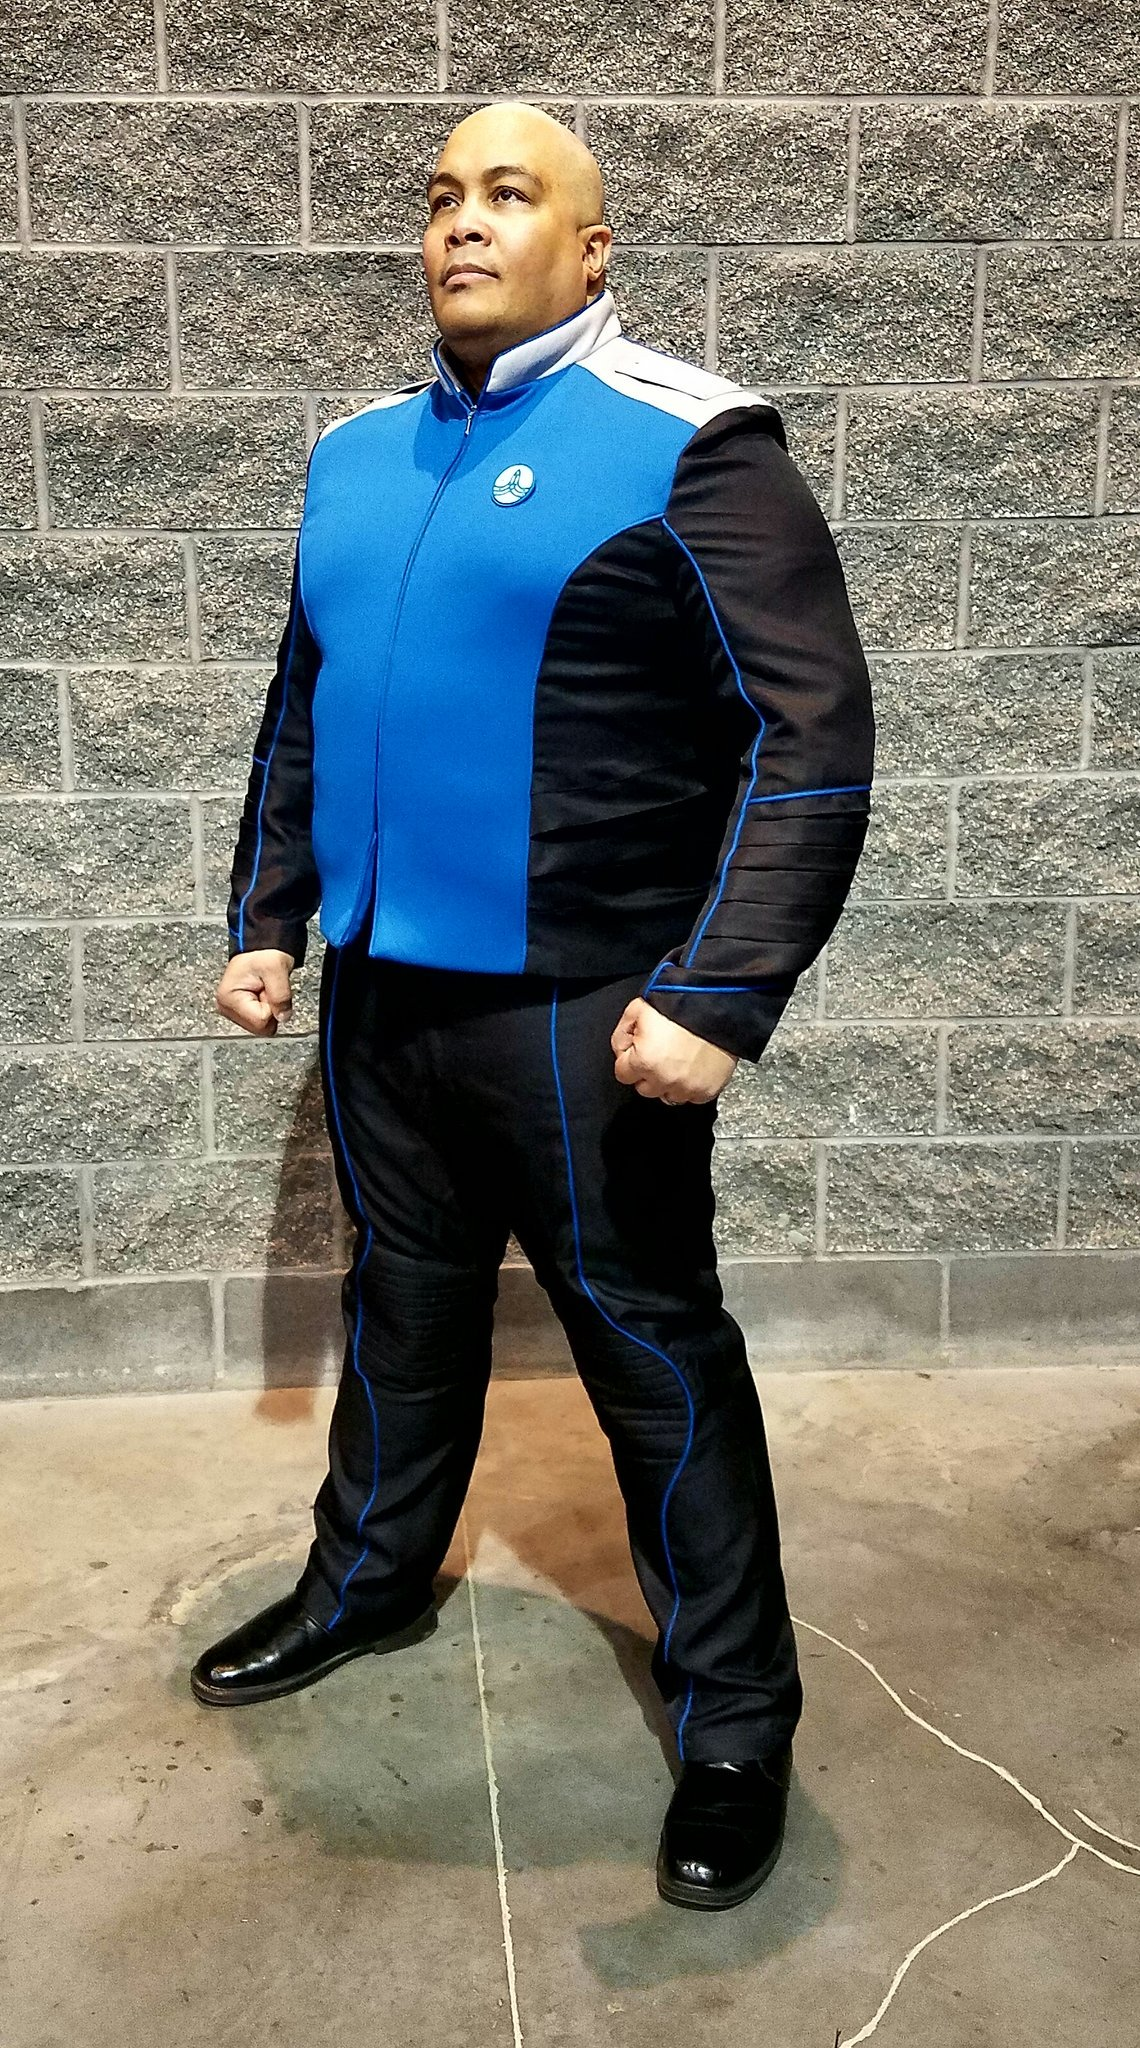 RT @THESMOKE000: @SethMacFarlane,  Ready to enlist on @TheOrville for the second season #theorville #fox https://t.co/vajqLWhzOl